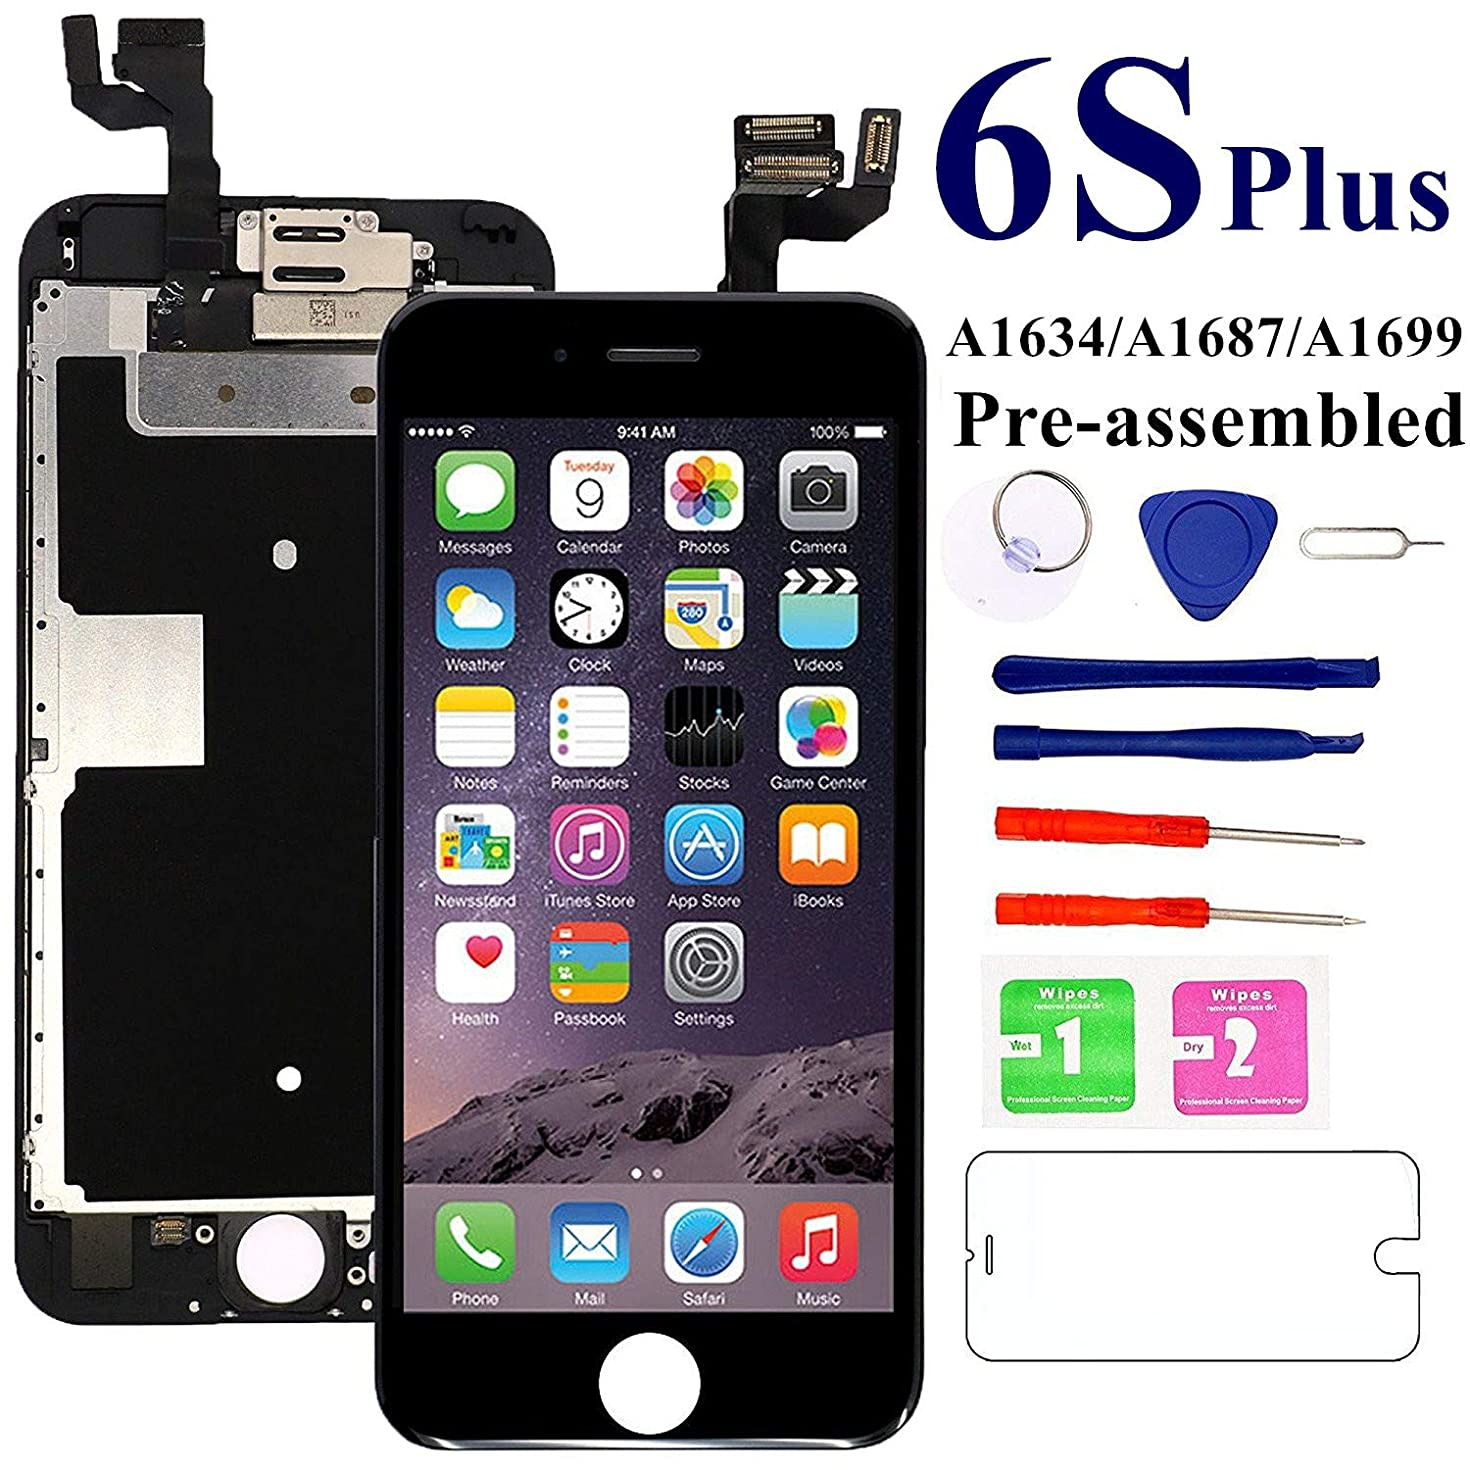 Screen Replacement for iPhone 6S Plus 5.5 inch [Black] - MAFIX LCD 3D Touch Display Digitizer with Ear Speaker, Light Sensors and Front Camera, Fit Model A1634, A1687 with Repair Tools and Protector